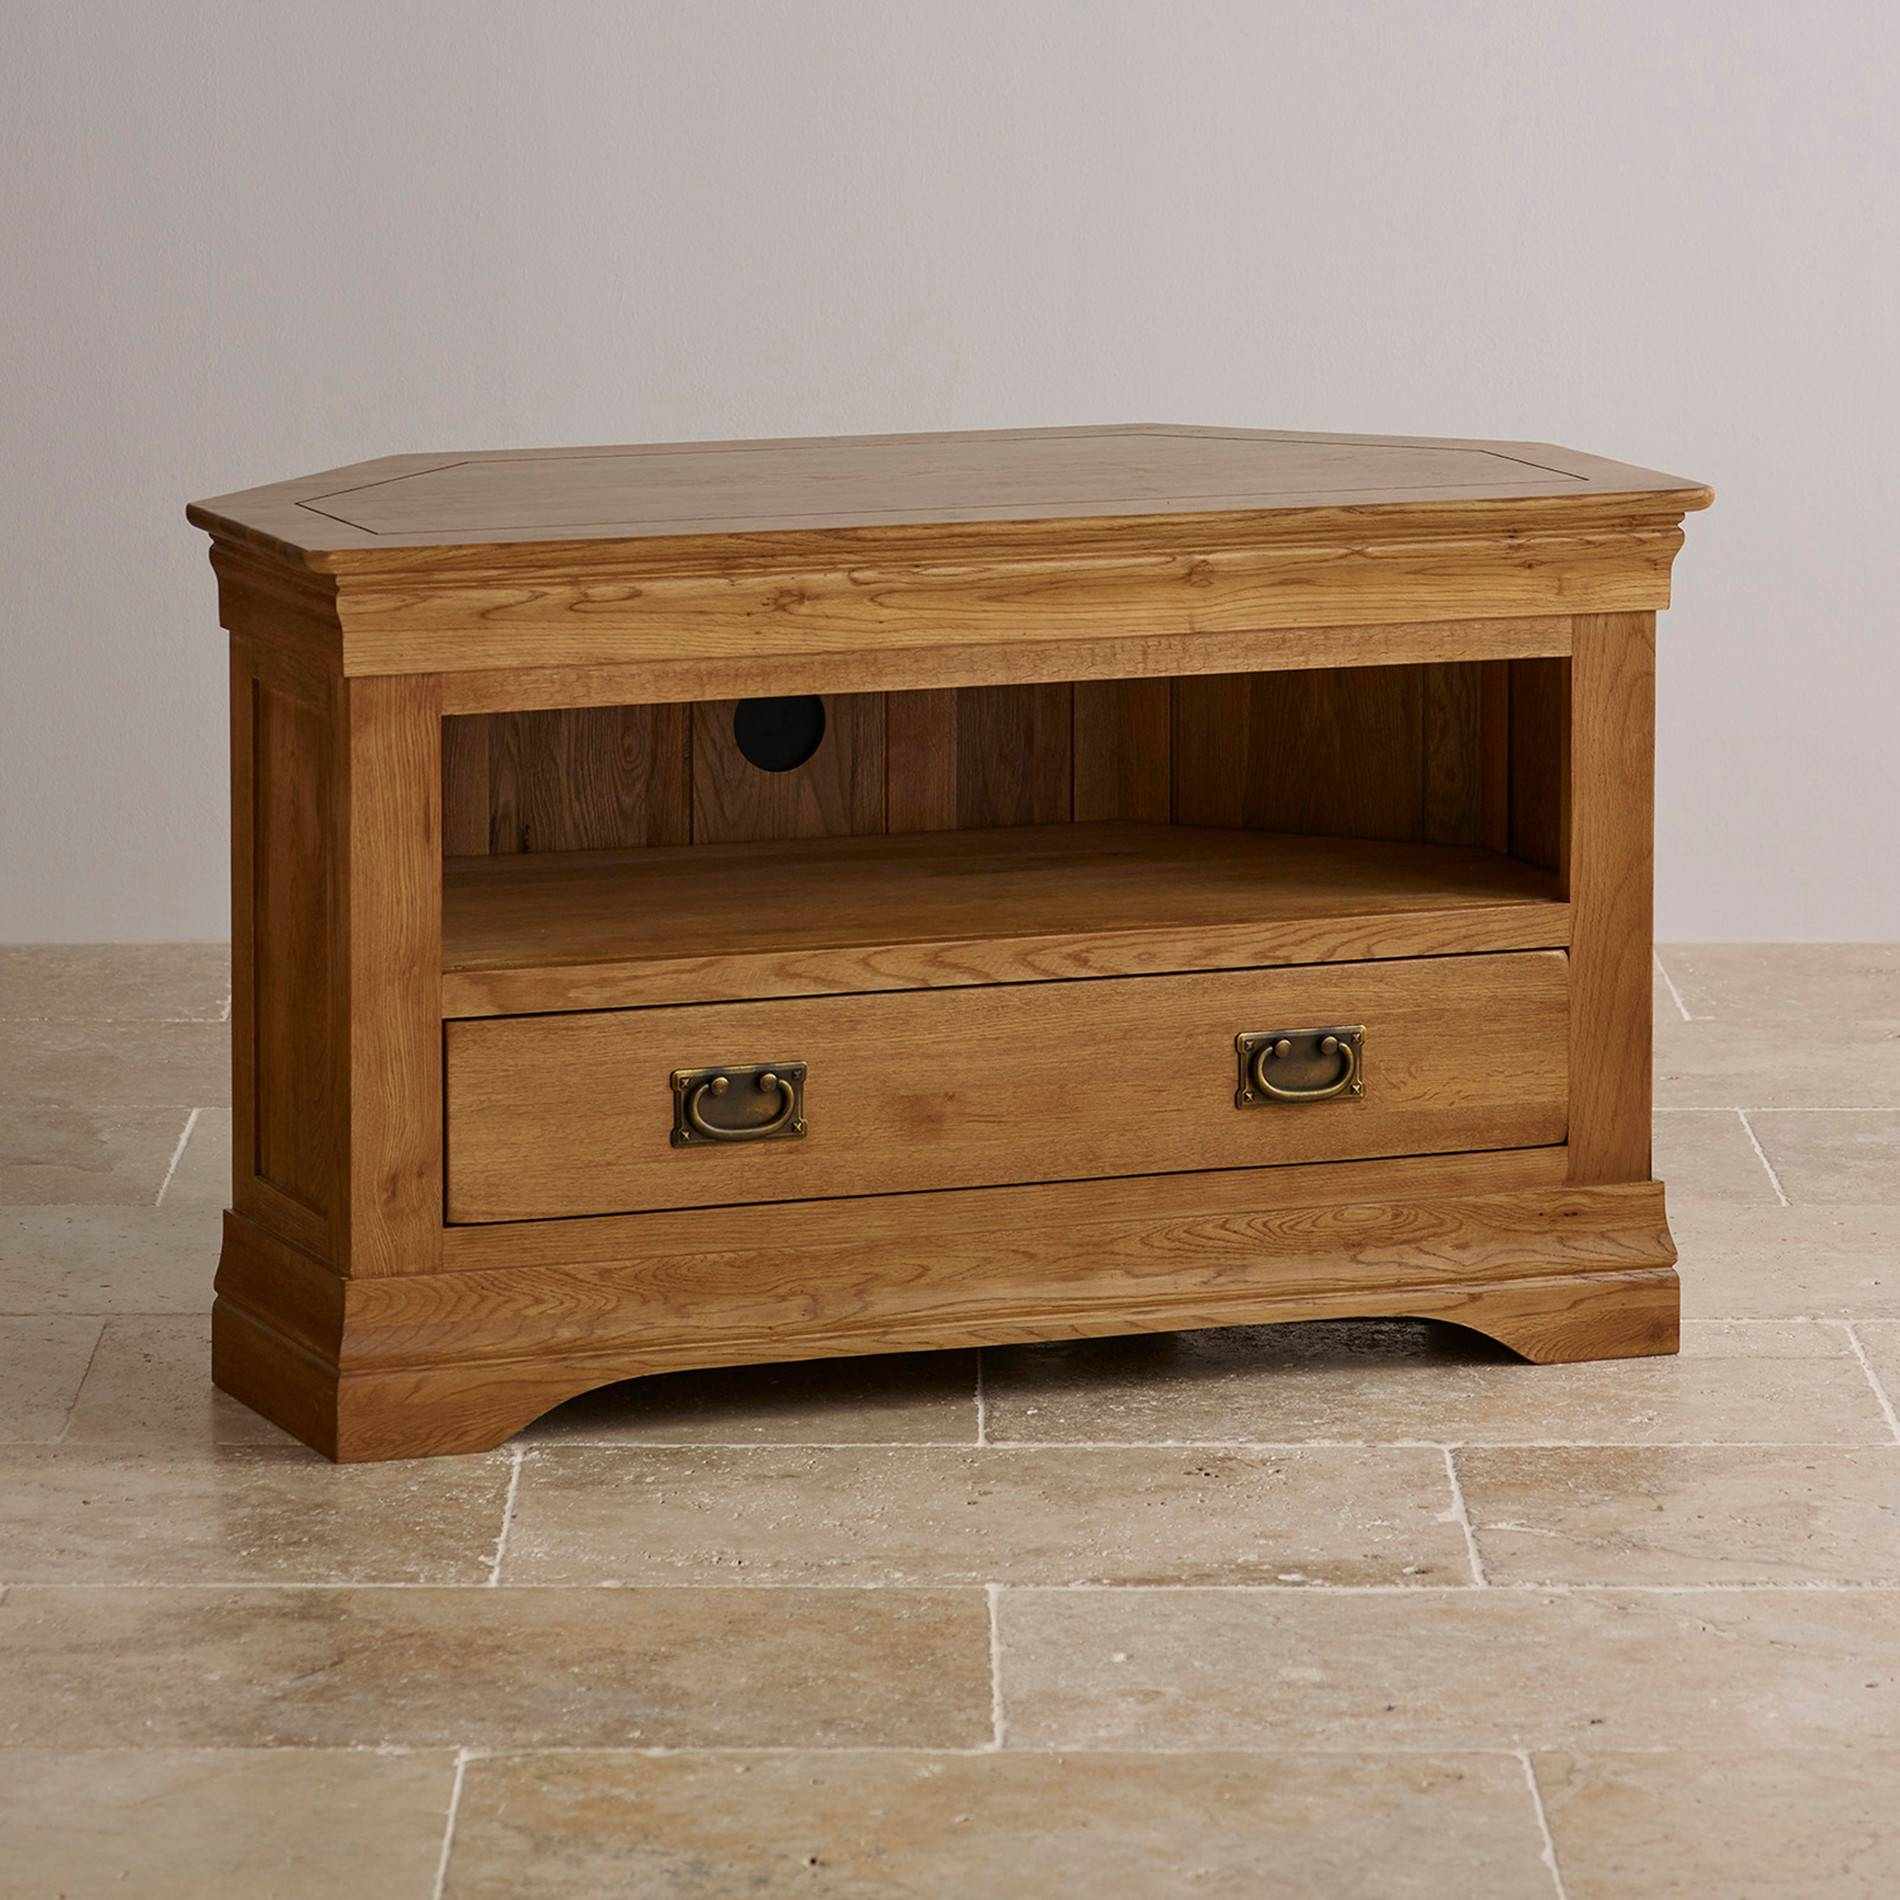 French Farmhouse Corner Tv Unit | Solid Oak | Oak Furniture Land for Corner Tv Cabinets (Image 7 of 15)